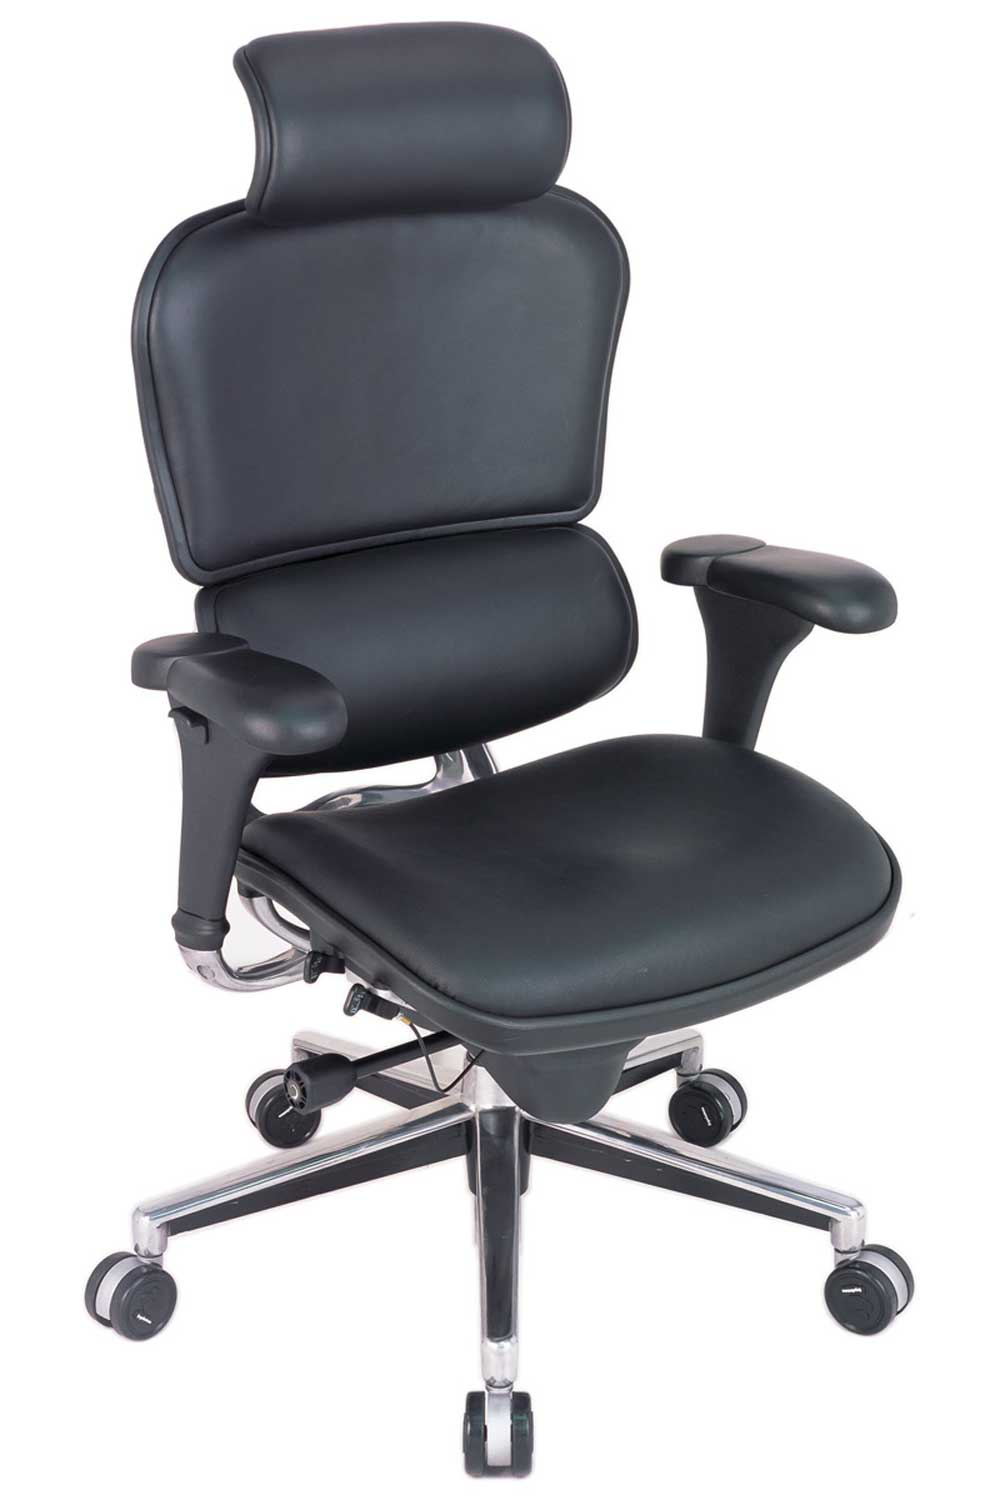 Eurotech Ergohuman Leather High Back Ergonomic Office Chairs